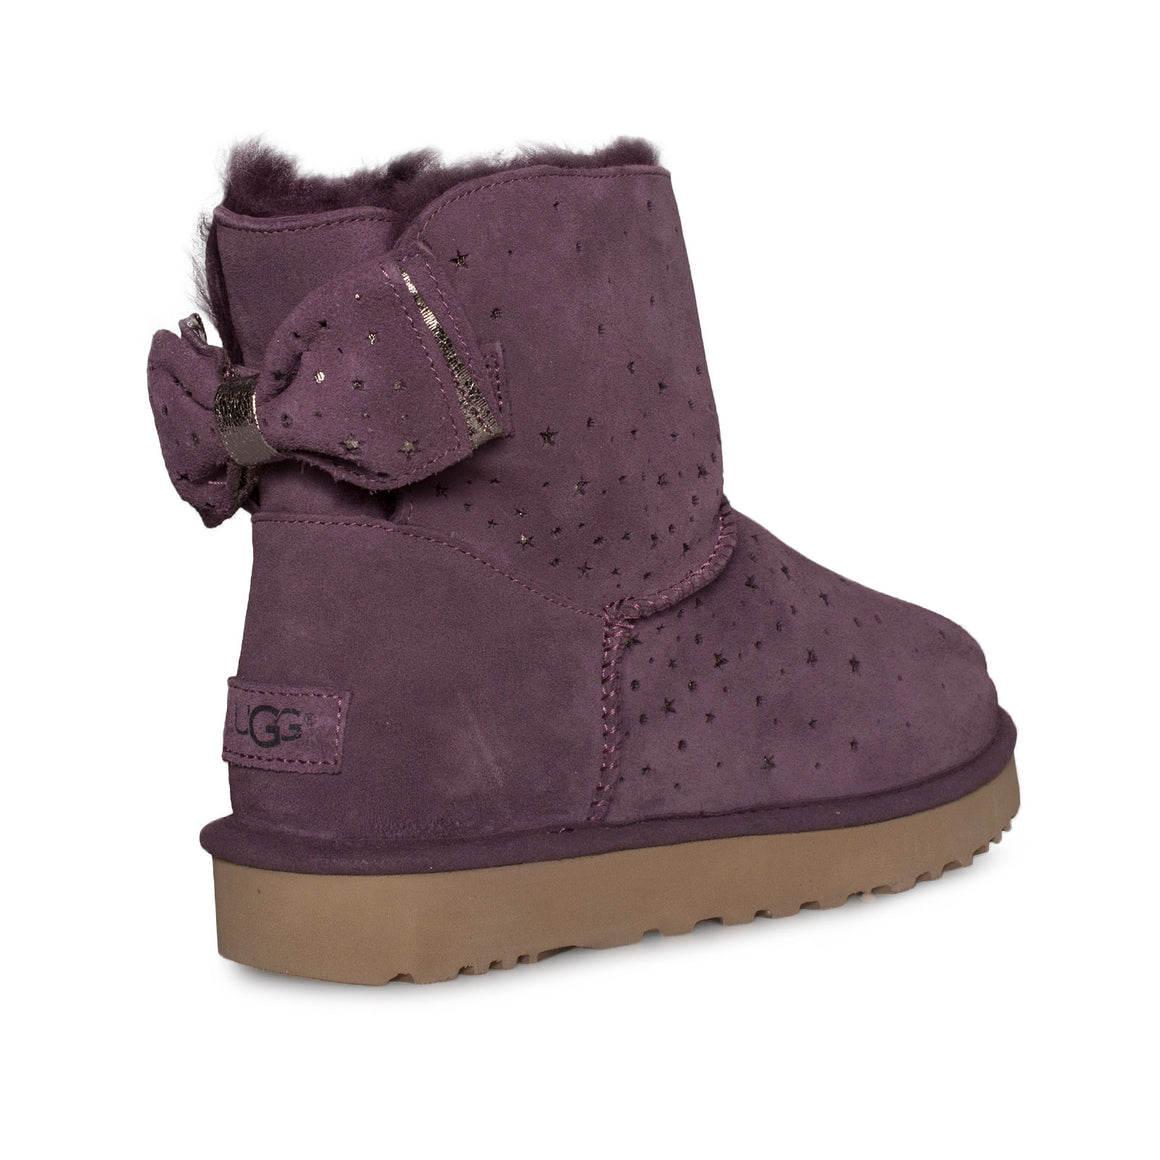 UGG Stargirl Bow Mini Port Boots - Women's